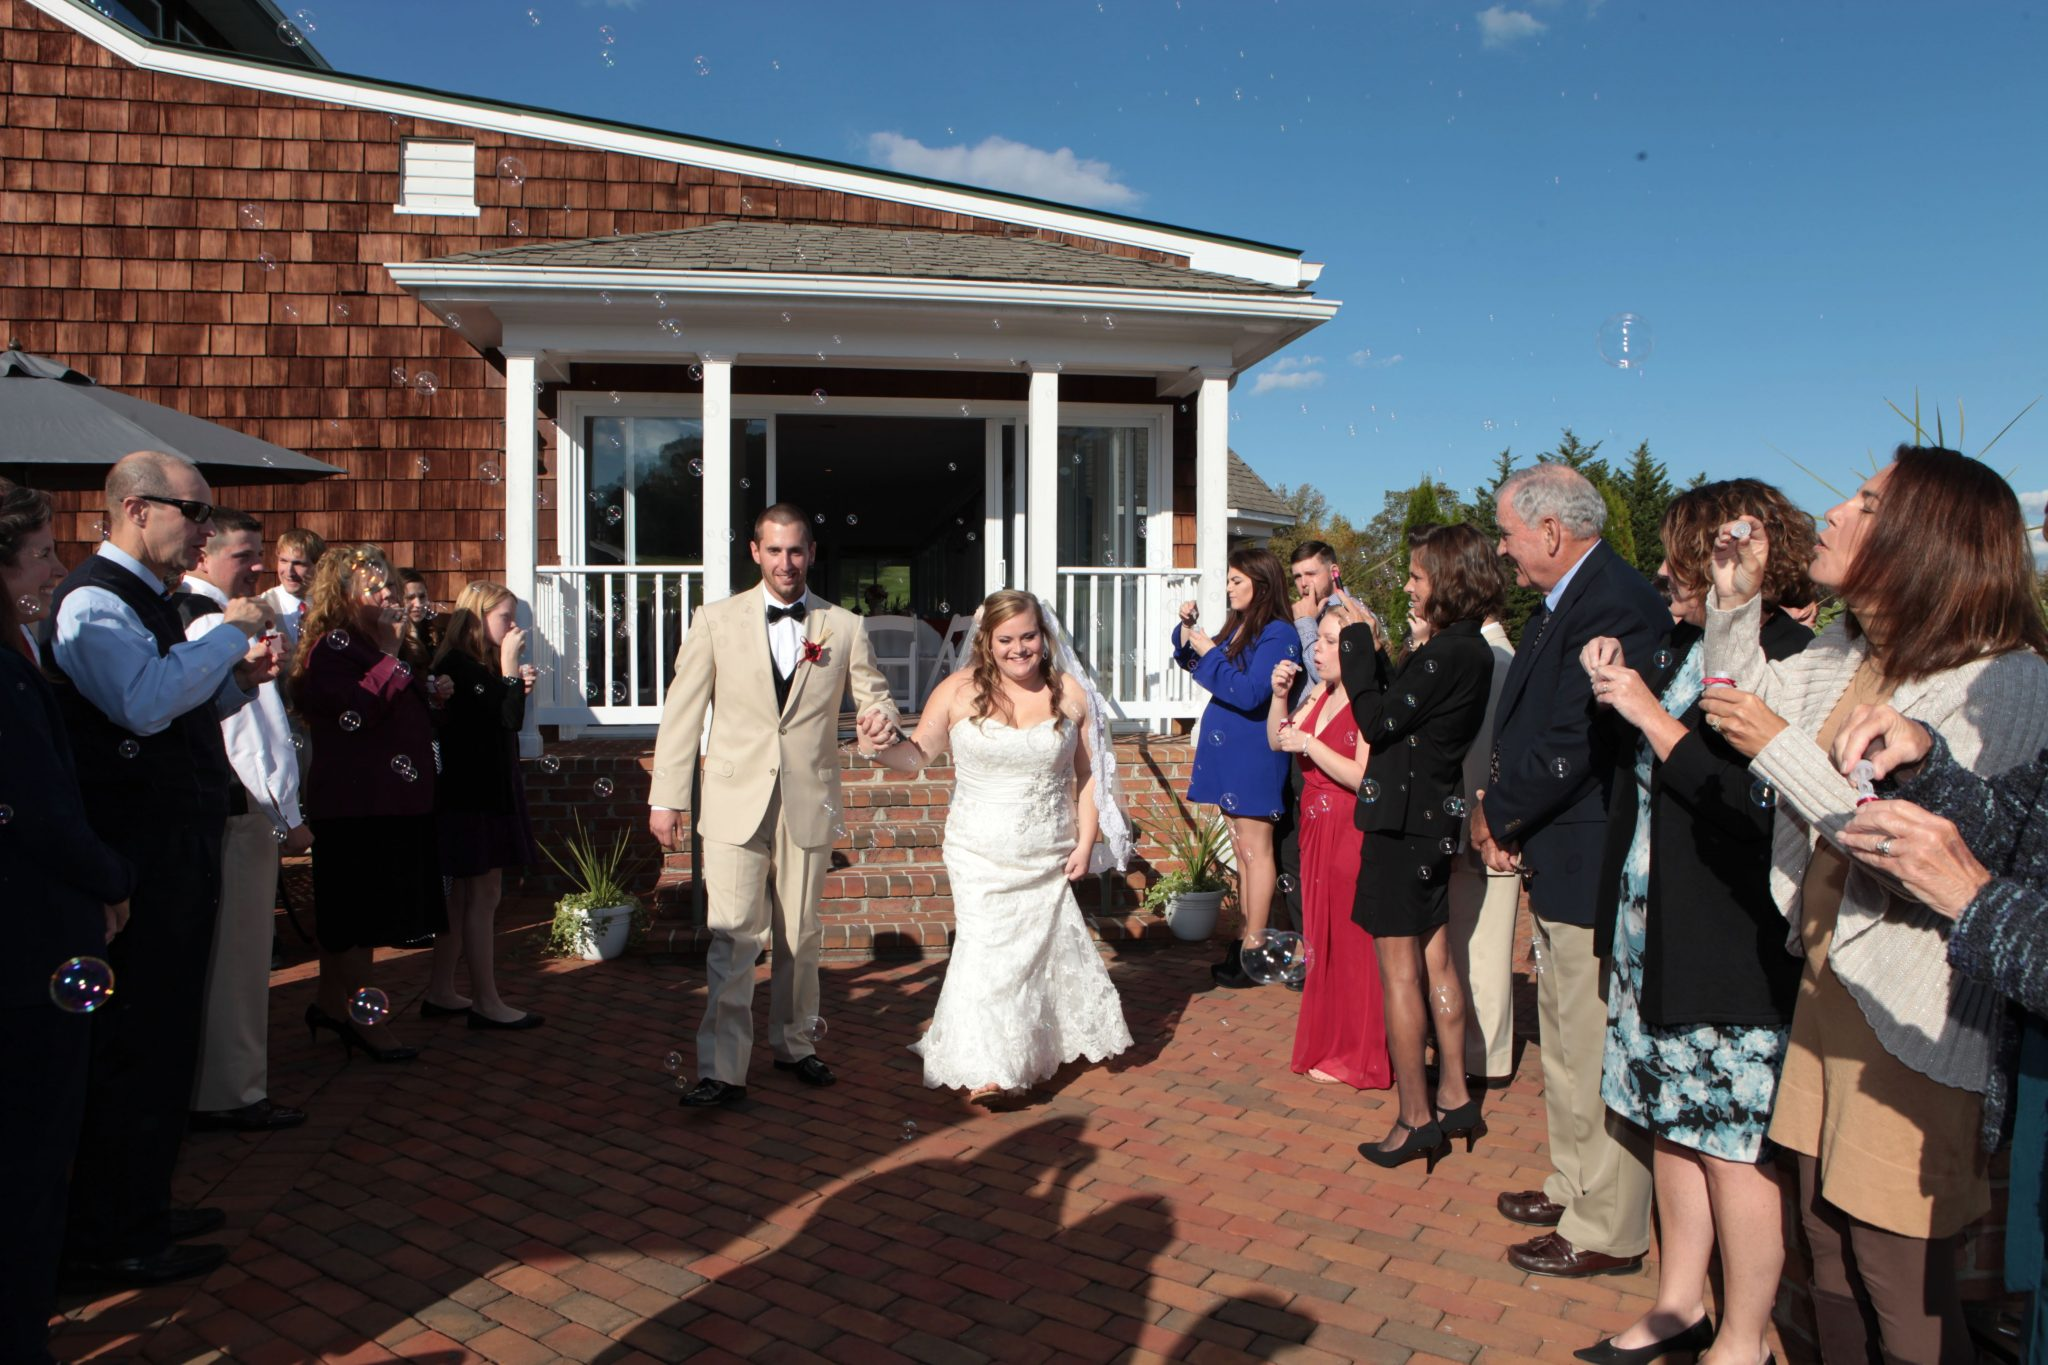 Couple walks from outdoor wedding pavilion after vows